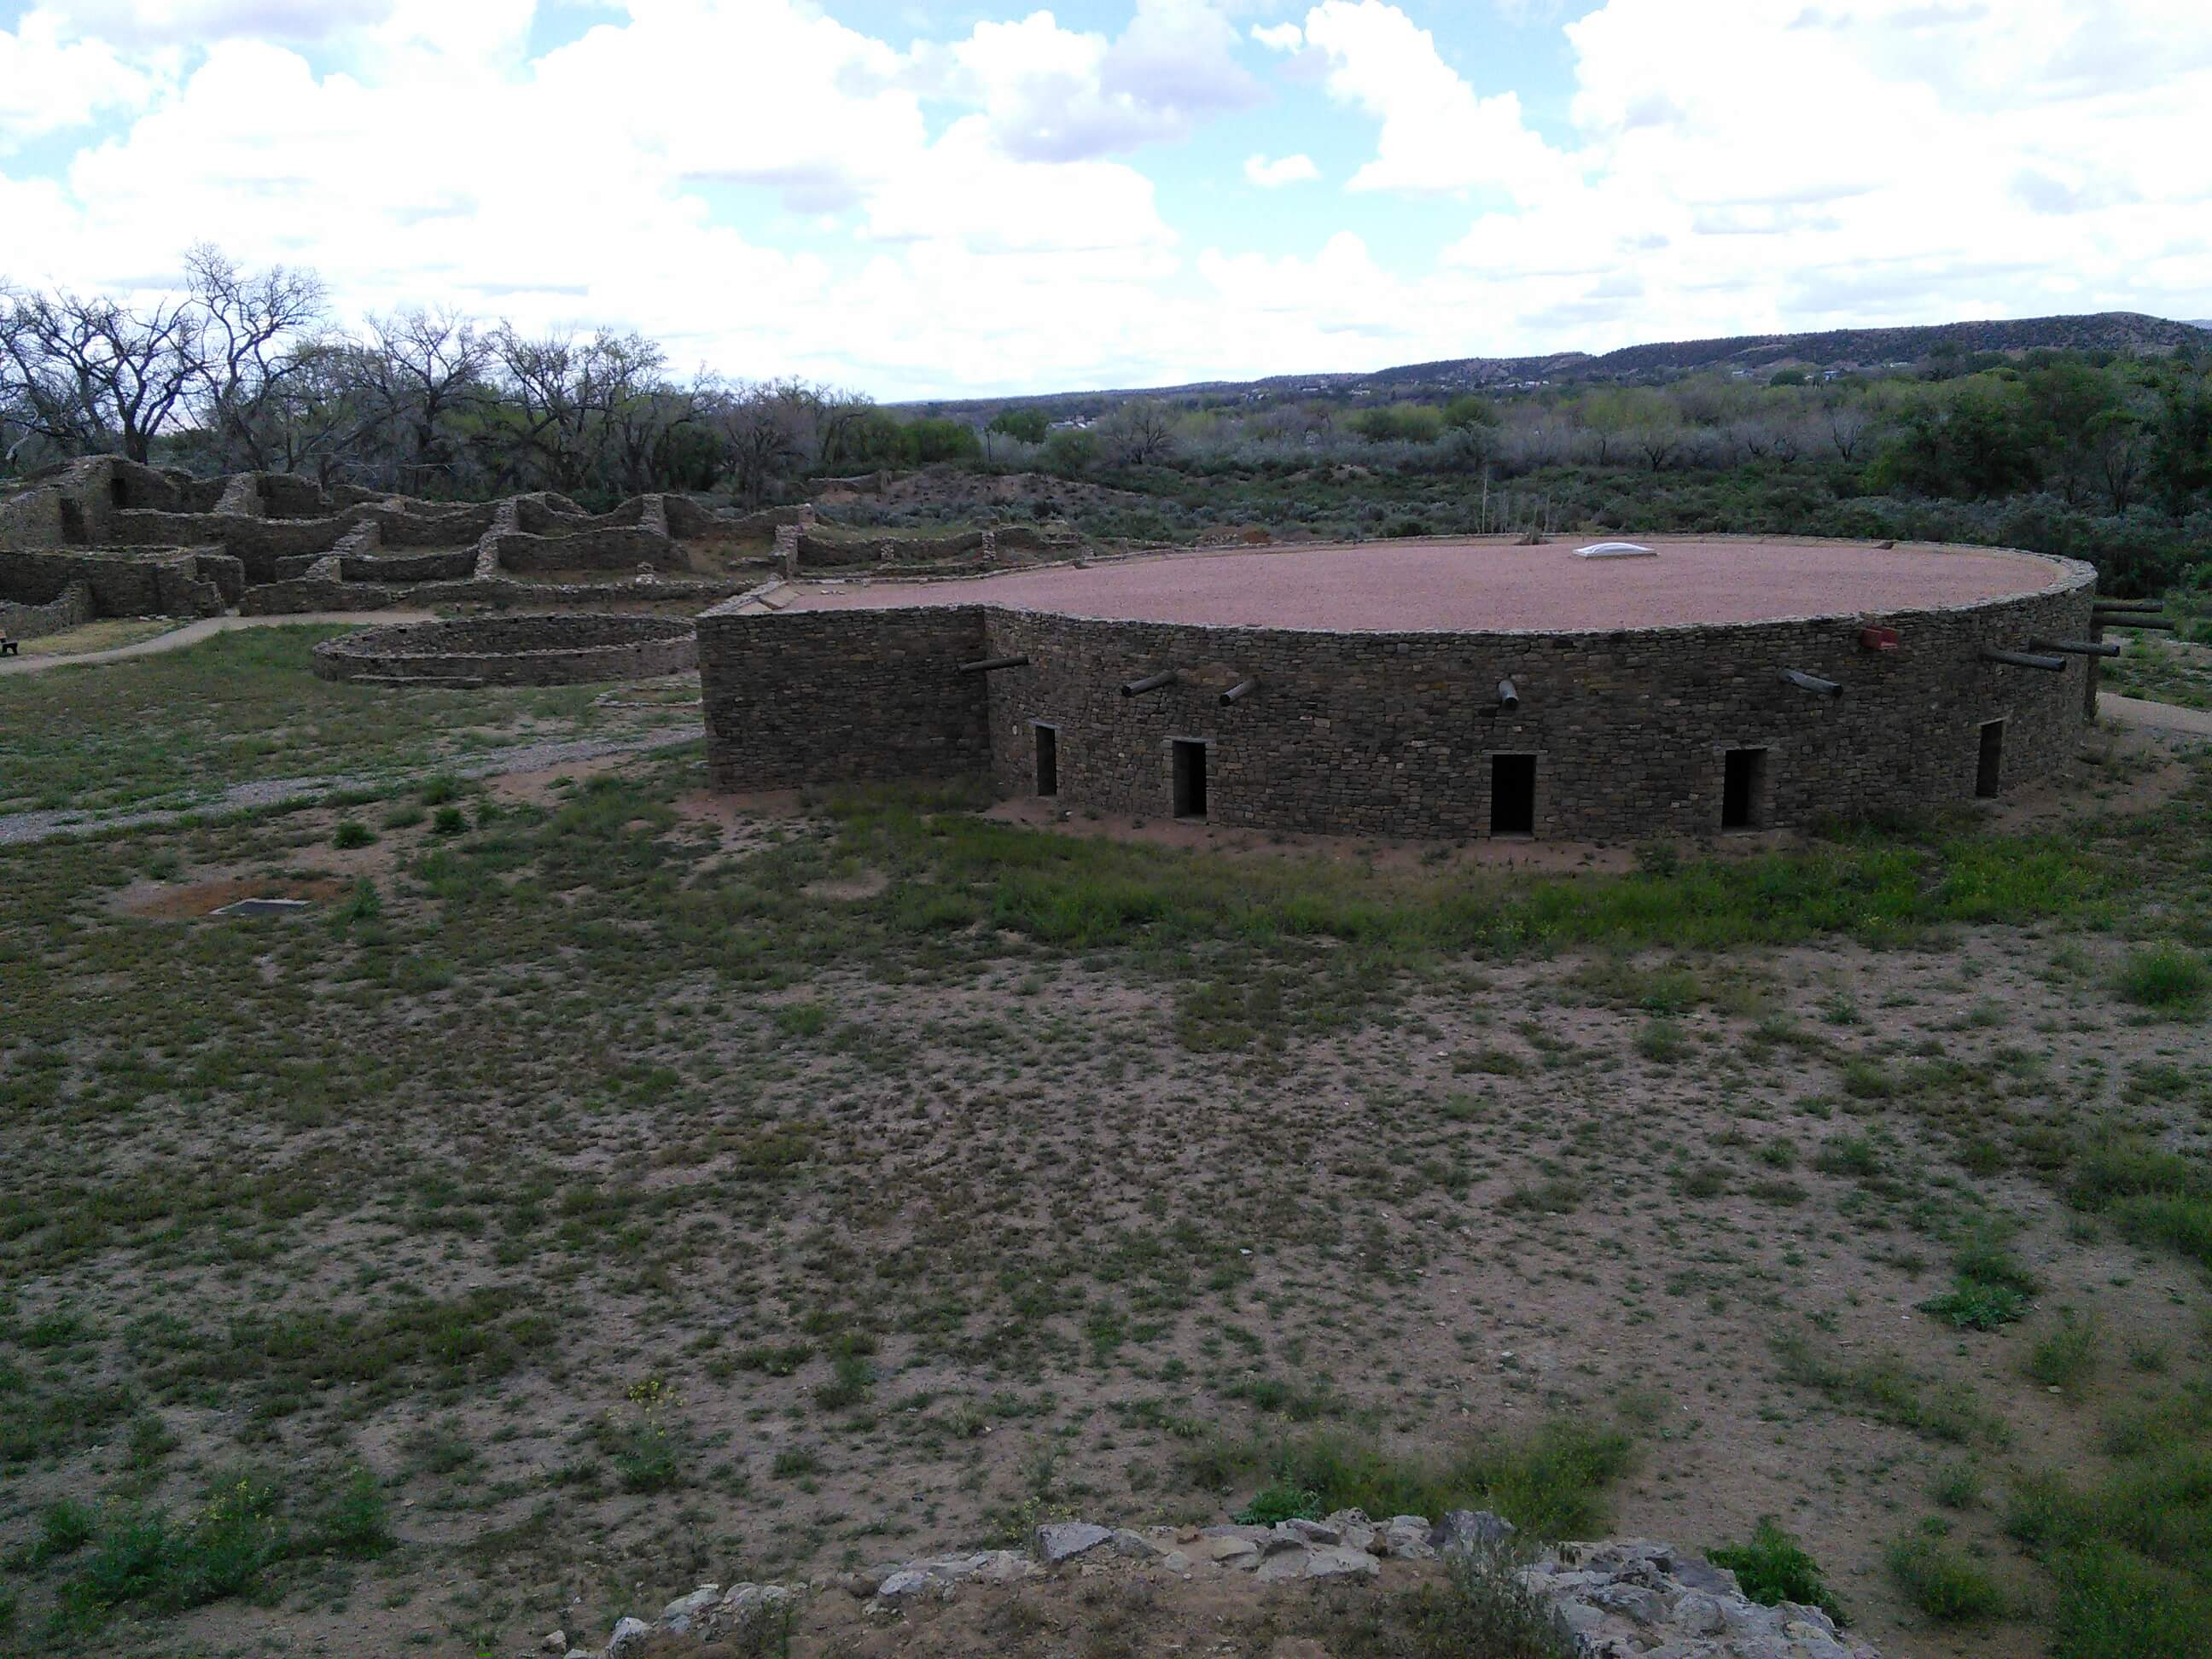 Reconstructed Kiva at Aztec Ruins National Monument, NM